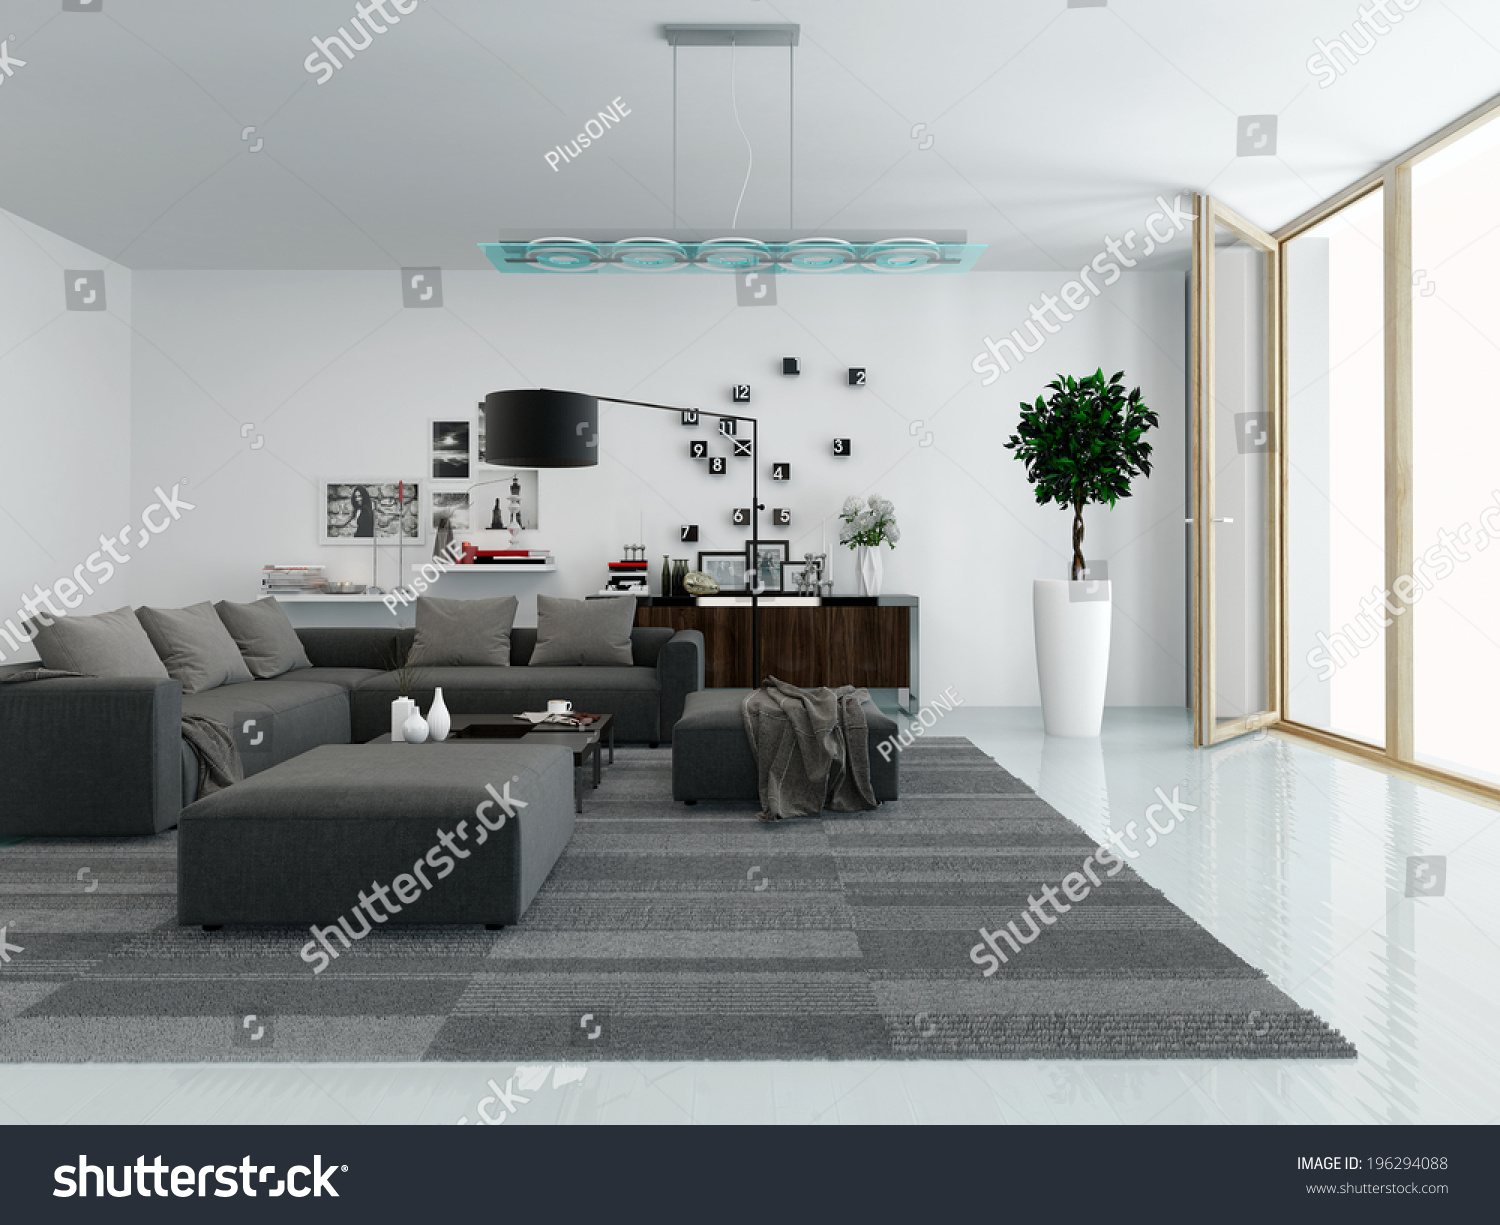 Modern Living Room Interior With A Comfortable Upholstered Lounge